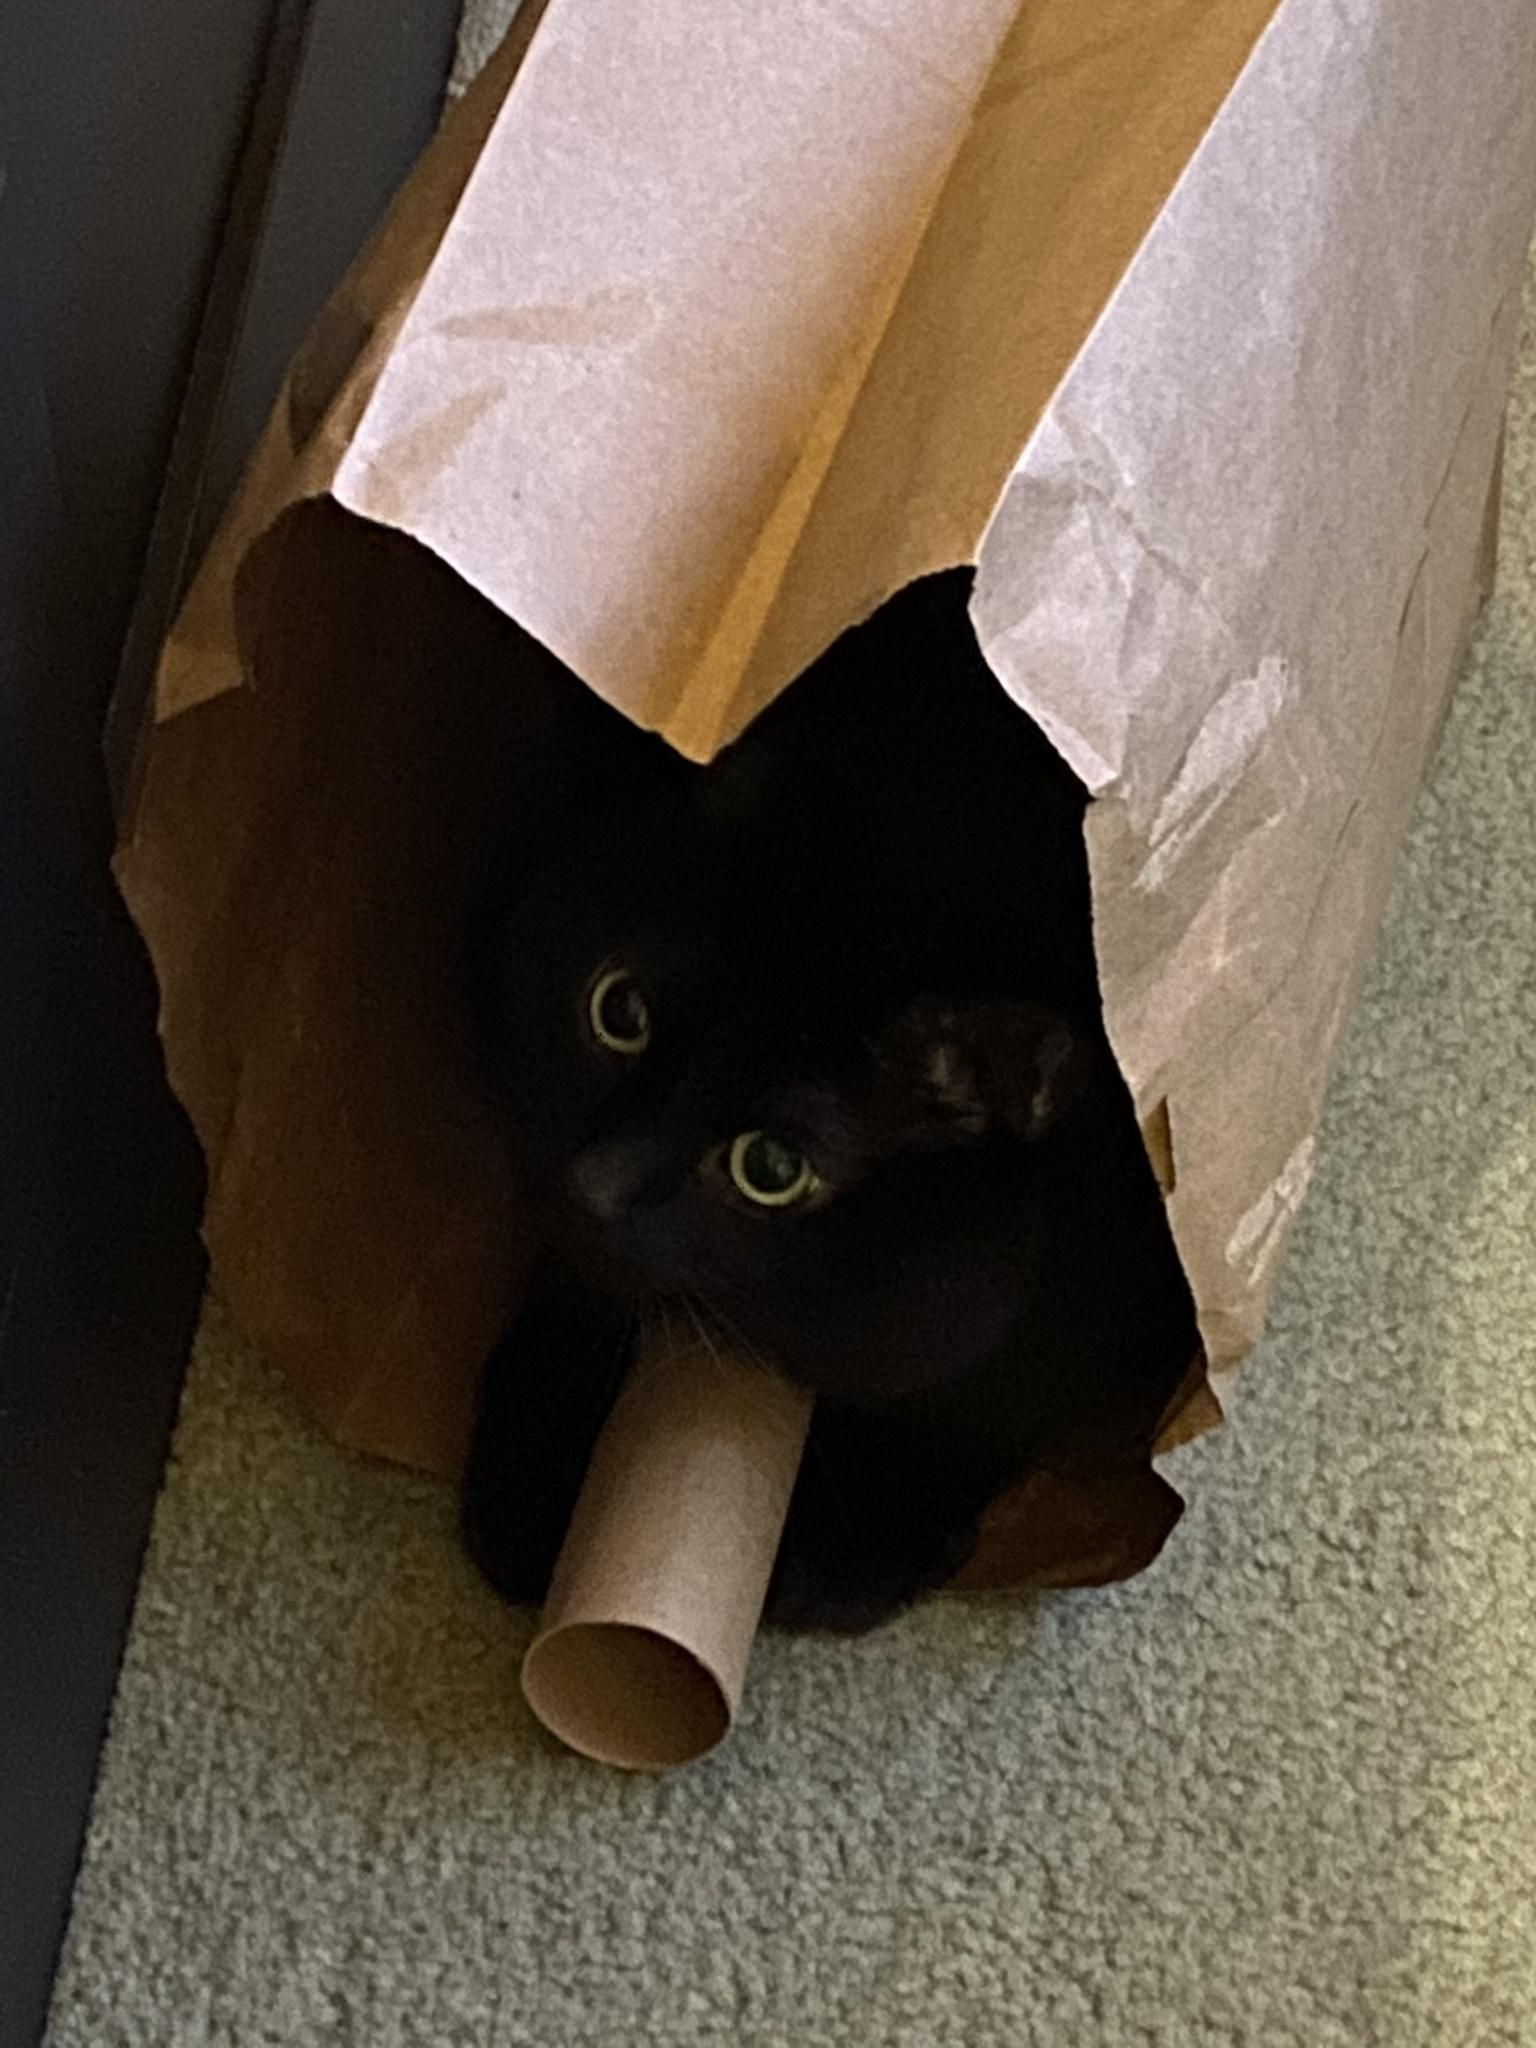 We buy him expensive toys and he plays with TP rolls and paper bags